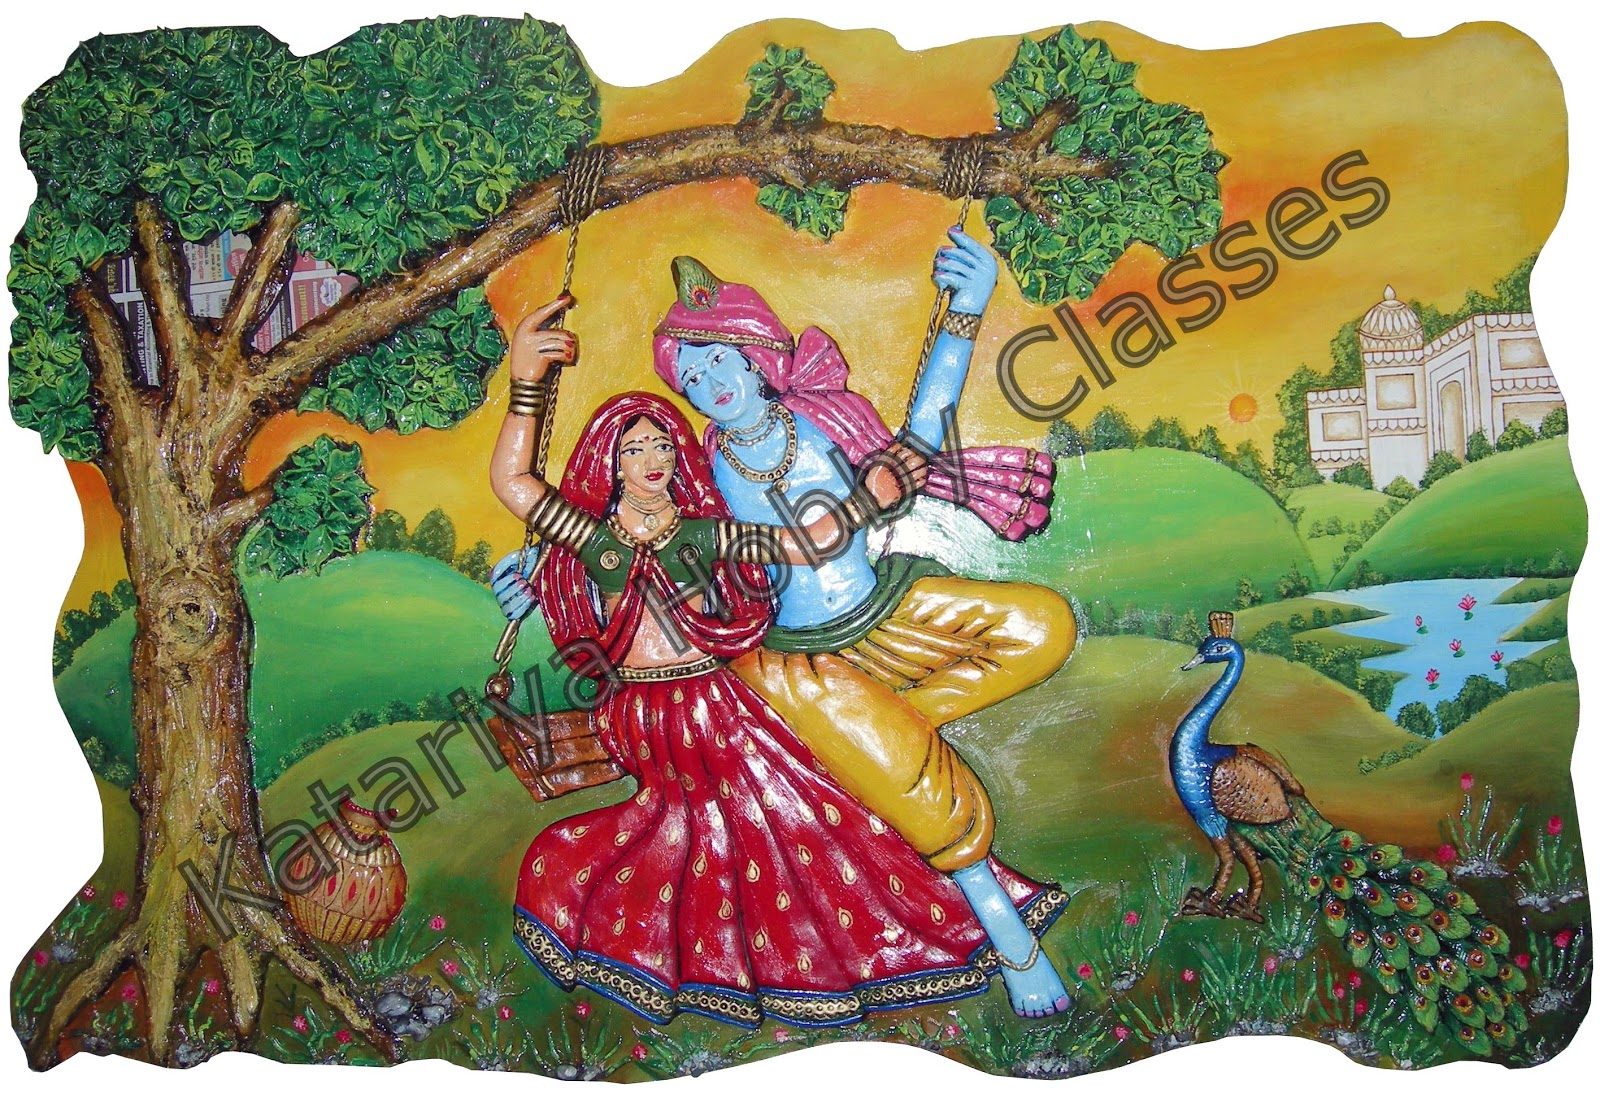 Art carft and hobby july 2011 for Mural radha krishna